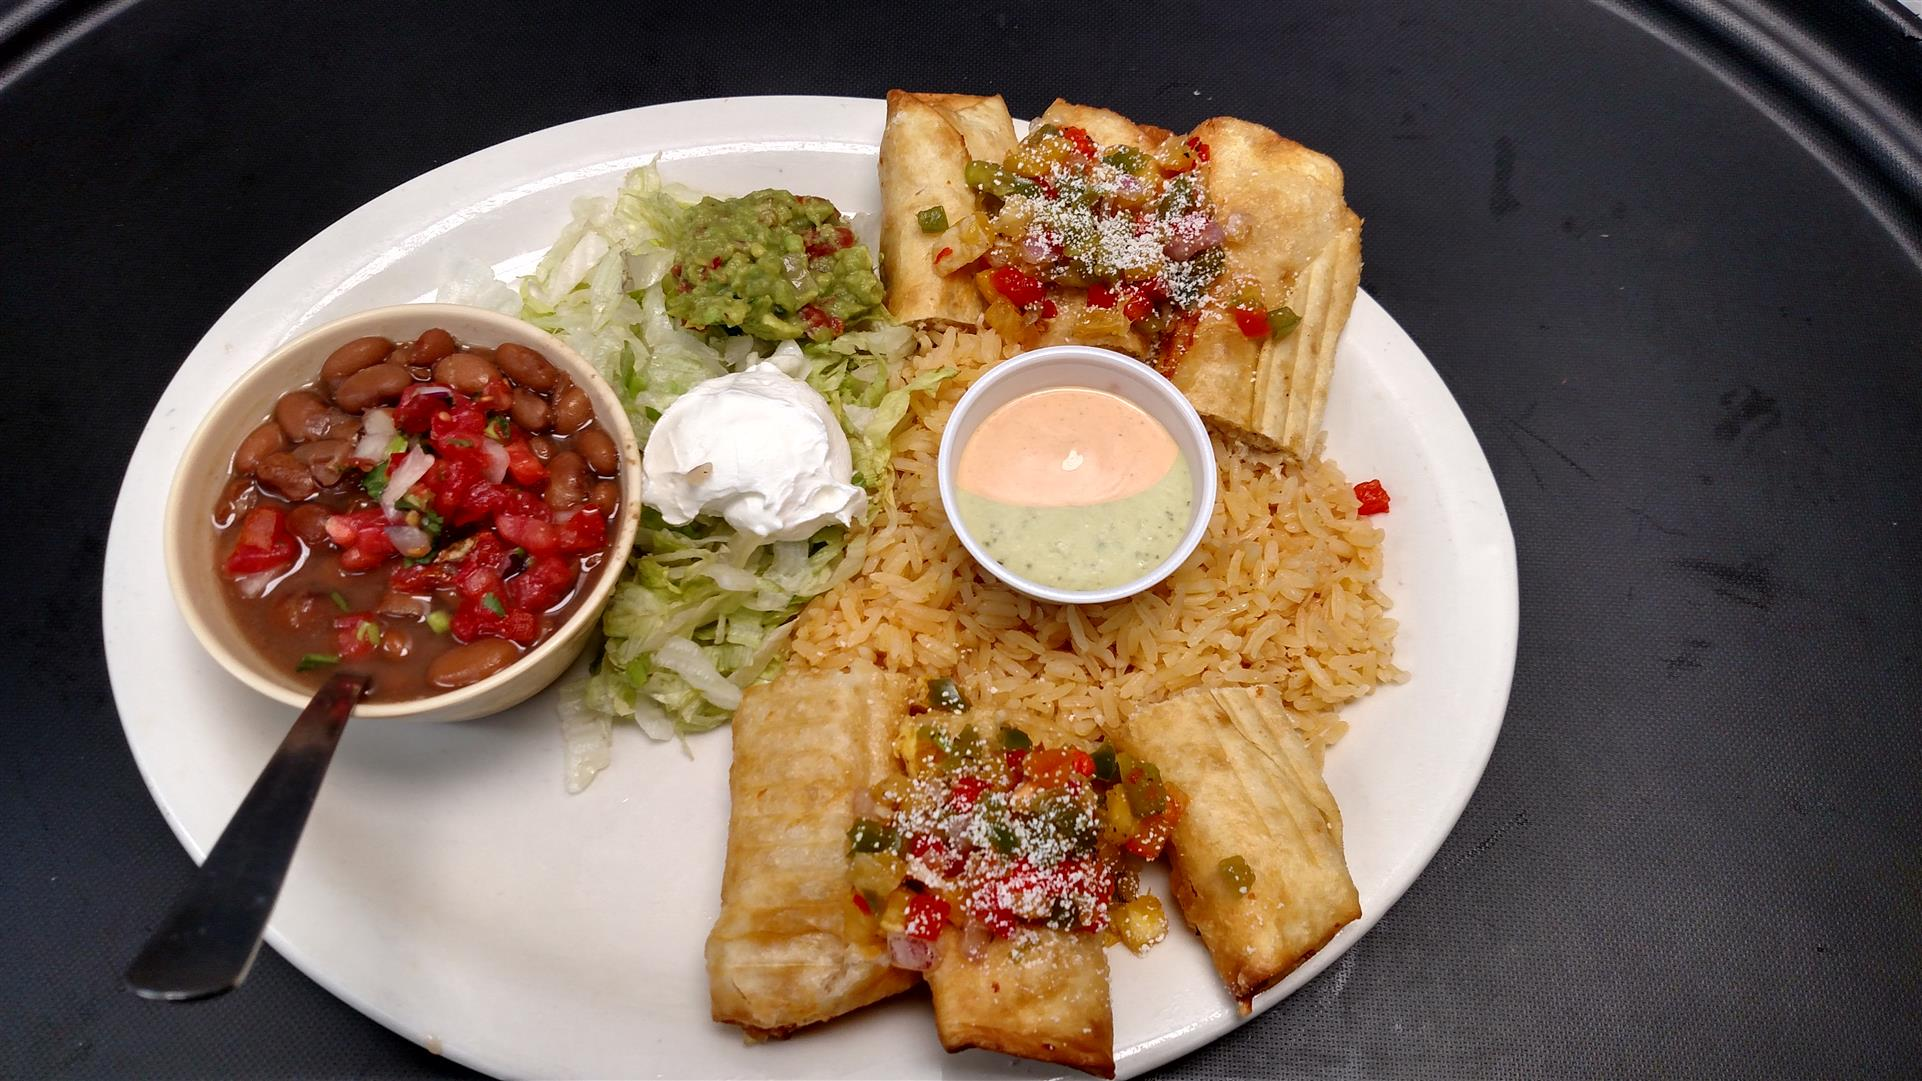 Chimichangas filled with beans, cheese, pico de gallo and deep-fried. Topped with salsa and cheese. Served with sour cream and rice on the side